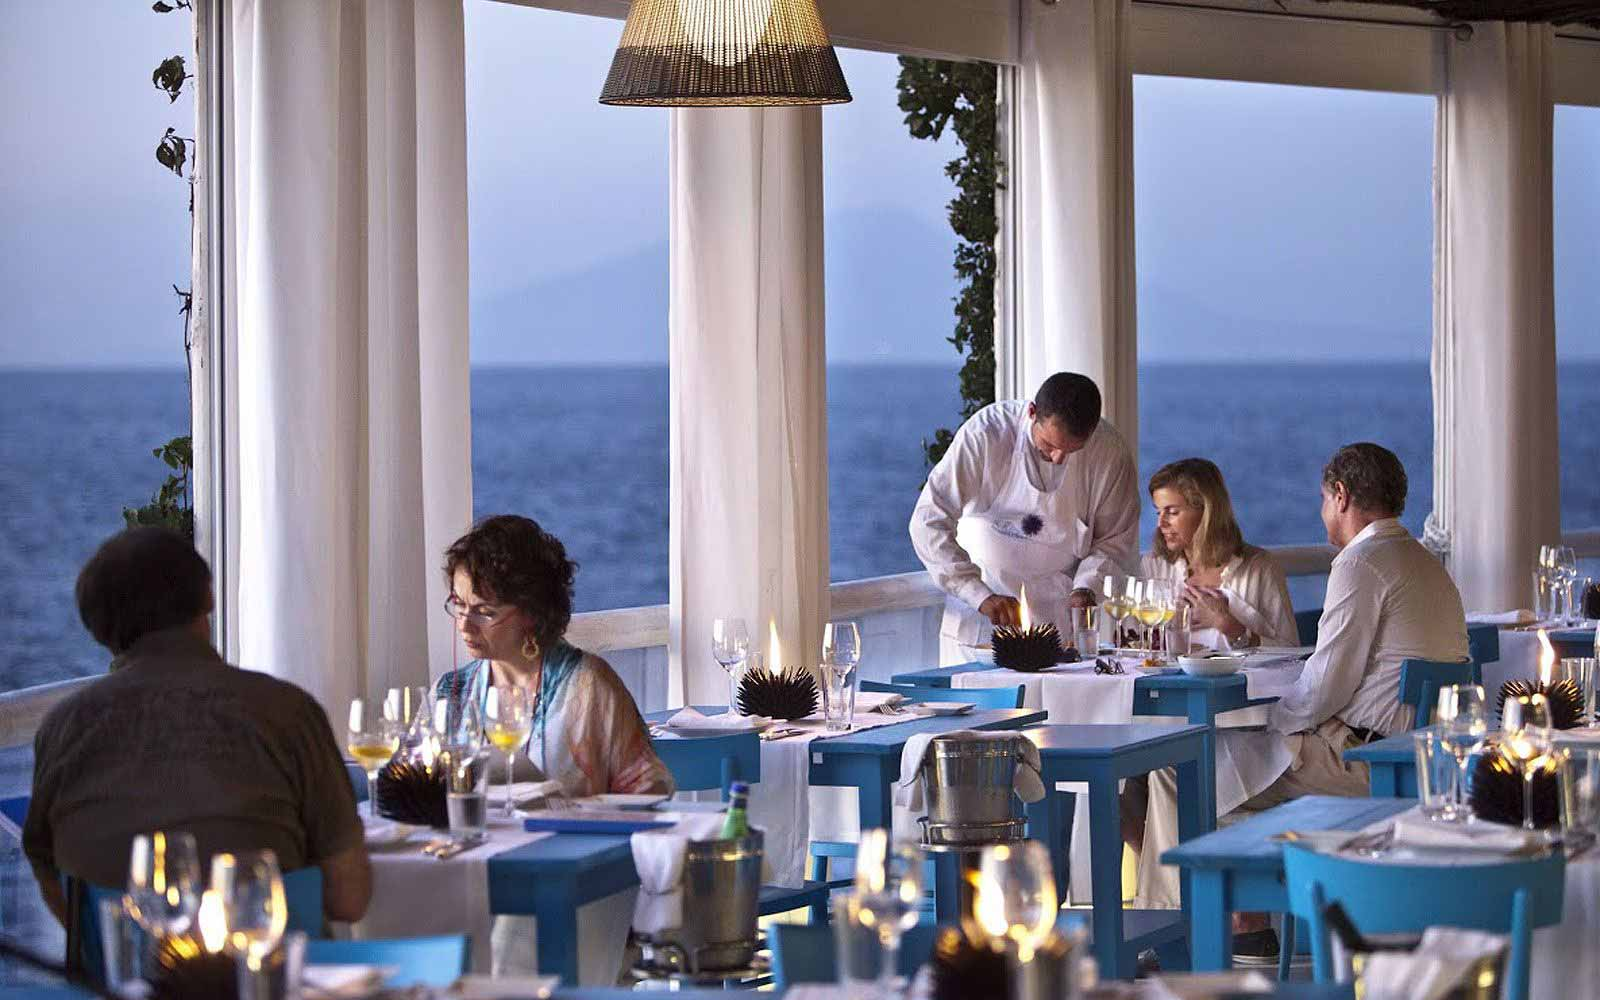 il Riccio Restaurant at the Capri Palace Hotel & Spa